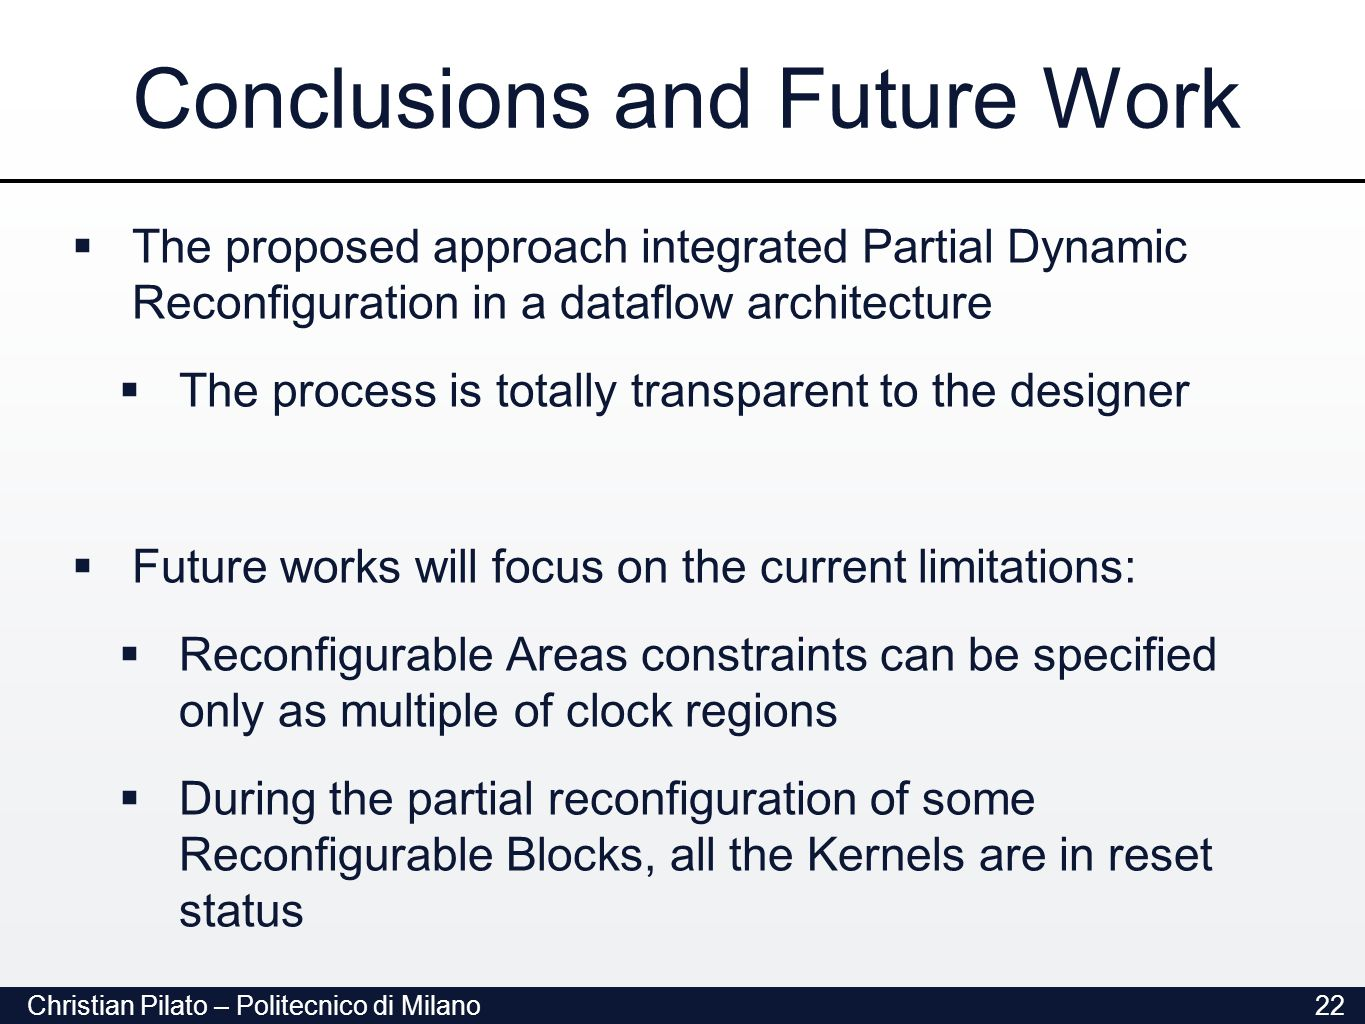 Christian Pilato – Politecnico di Milano22 Conclusions and Future Work  The proposed approach integrated Partial Dynamic Reconfiguration in a dataflow architecture  The process is totally transparent to the designer  Future works will focus on the current limitations:  Reconfigurable Areas constraints can be specified only as multiple of clock regions  During the partial reconfiguration of some Reconfigurable Blocks, all the Kernels are in reset status